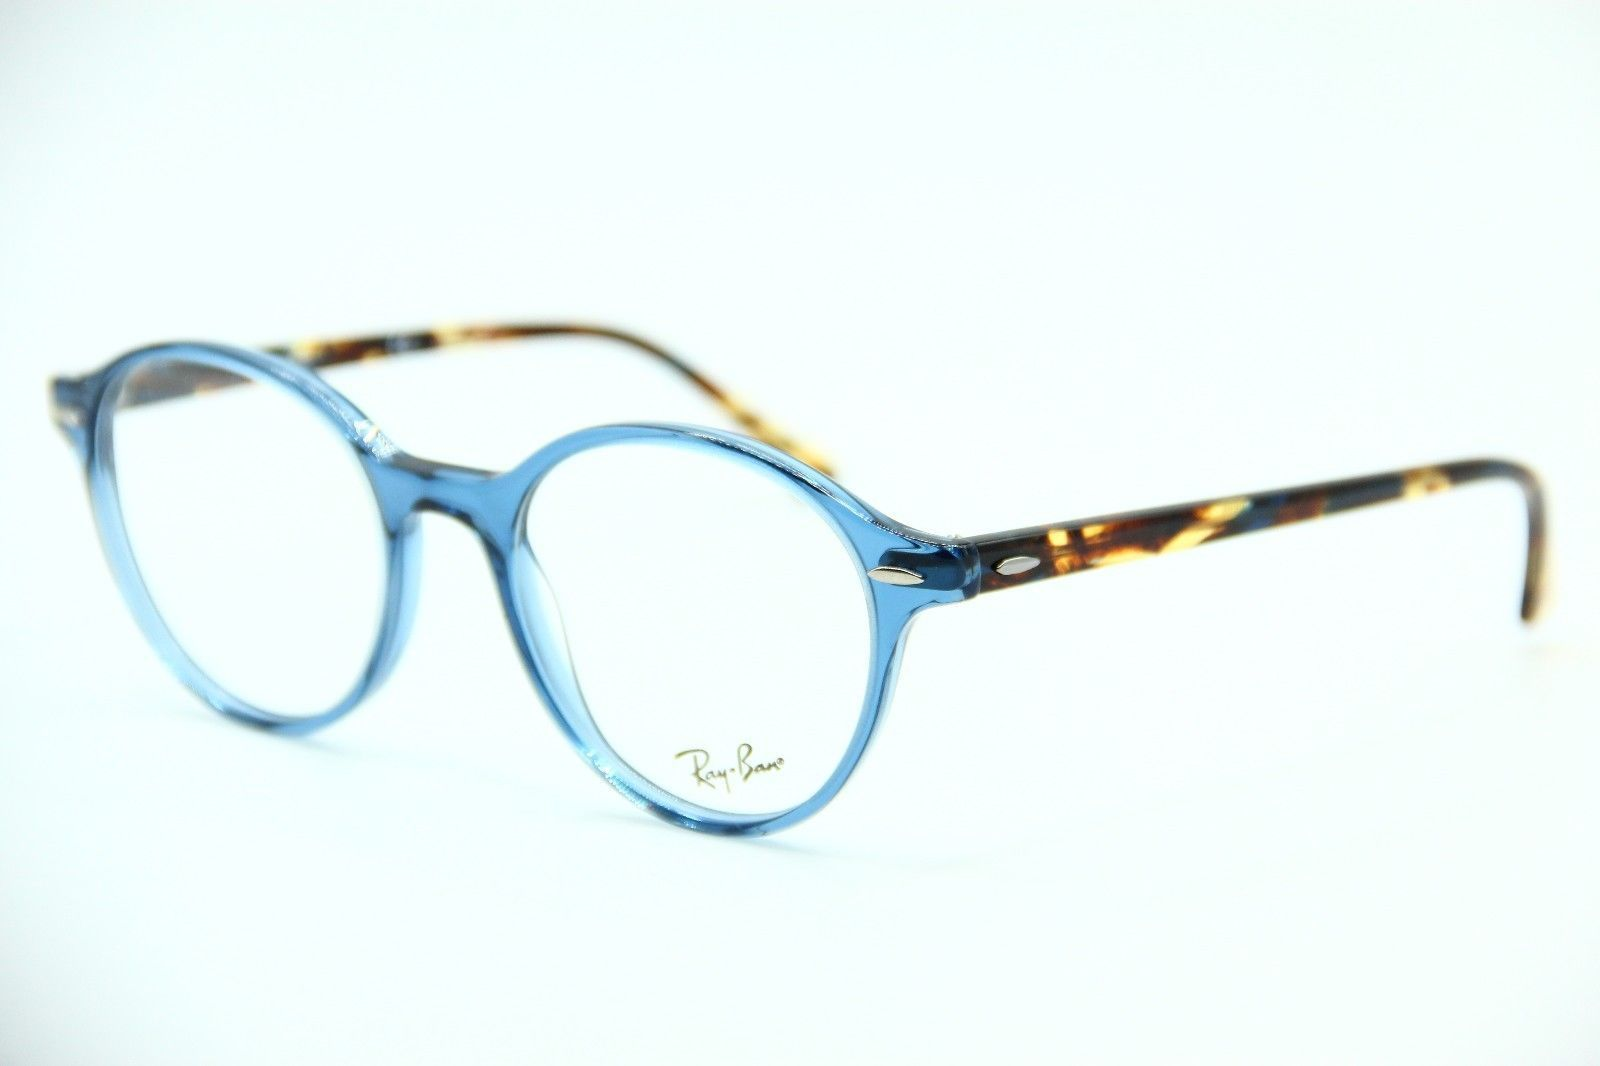 e7c1787705 New RAY-BAN Rb 7118 8022 Blue Eyeglasses and 42 similar items. 57